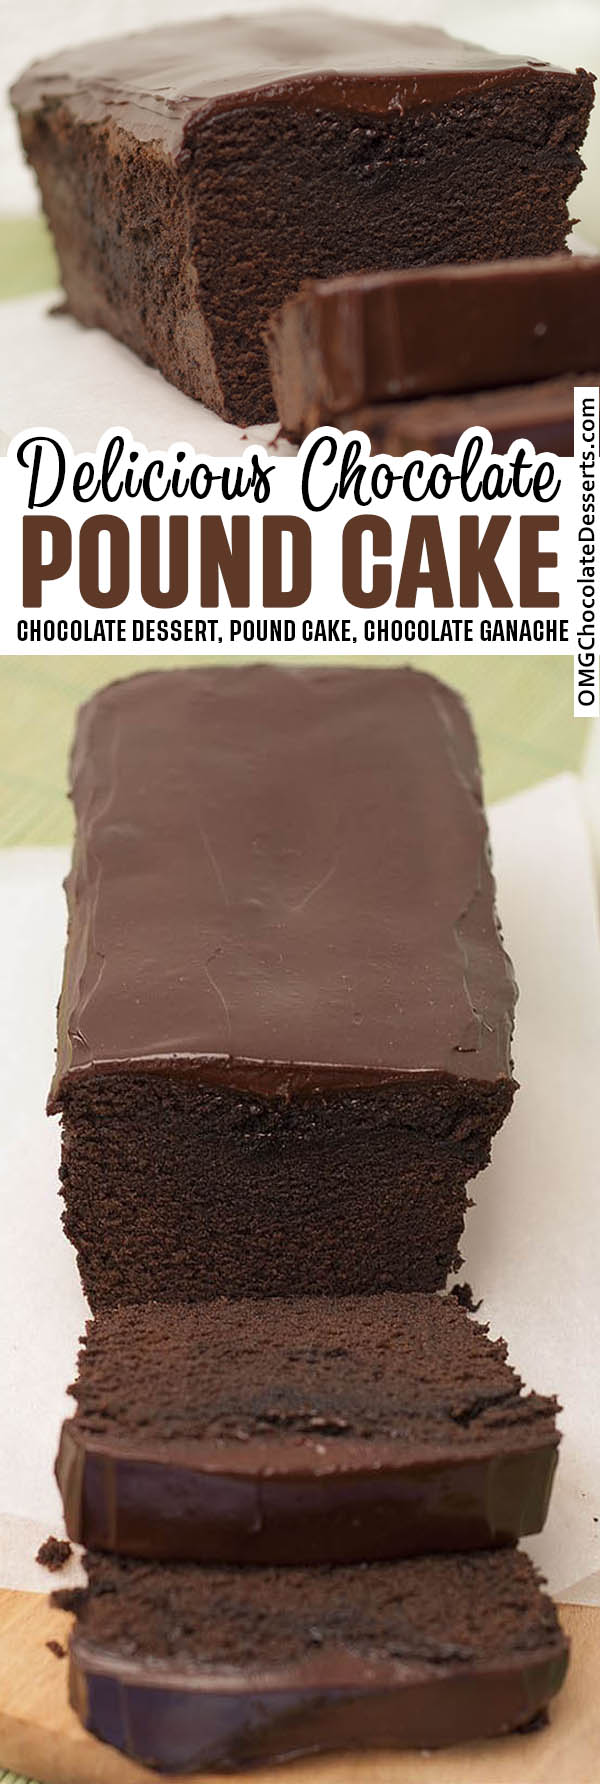 Two different inages of chocolate Pound Cake.